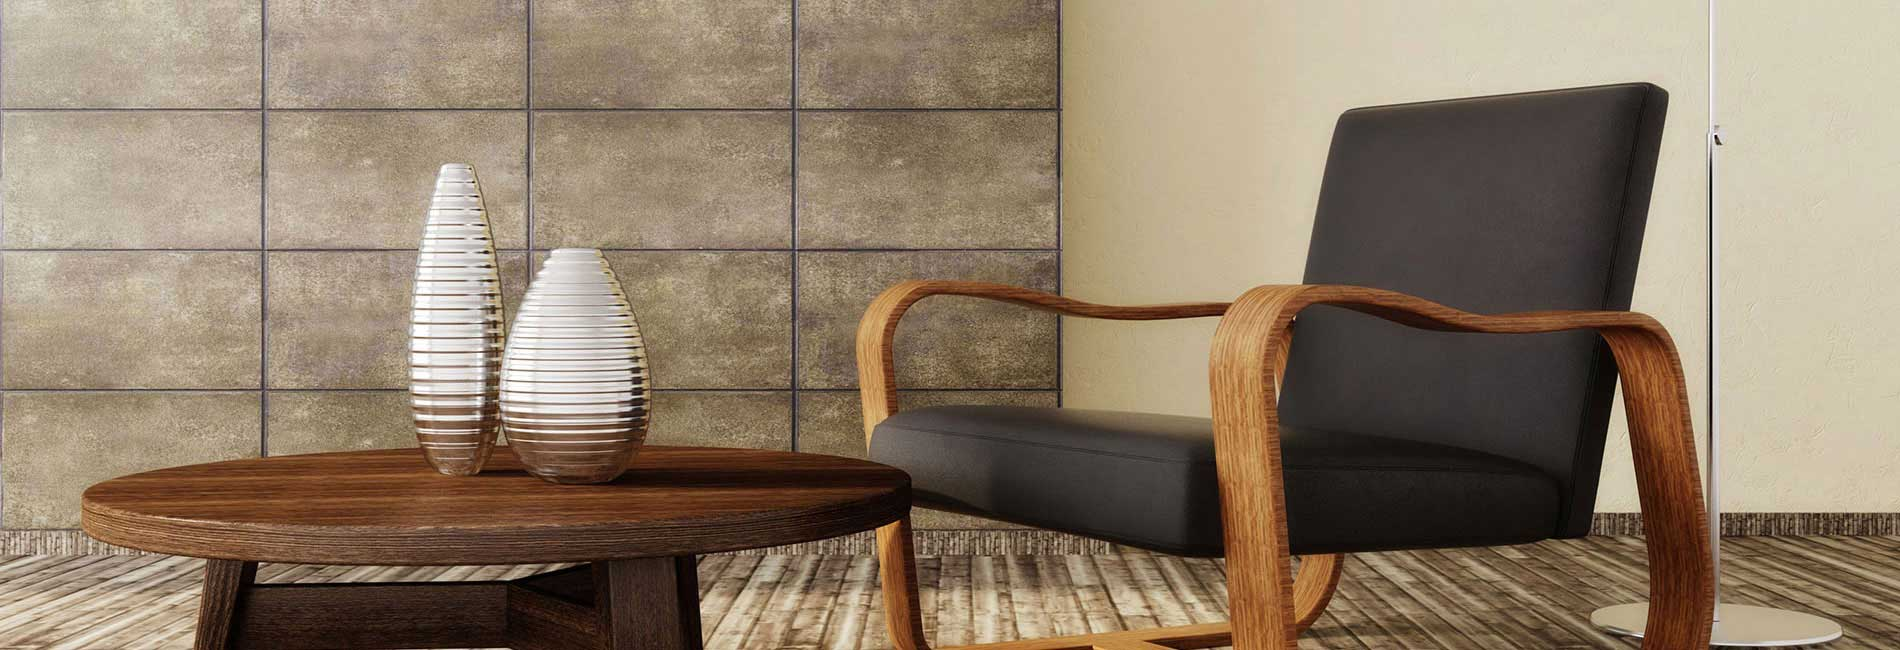 Beautifully Designed Interior with Ceramic Wall and Floor Tiles